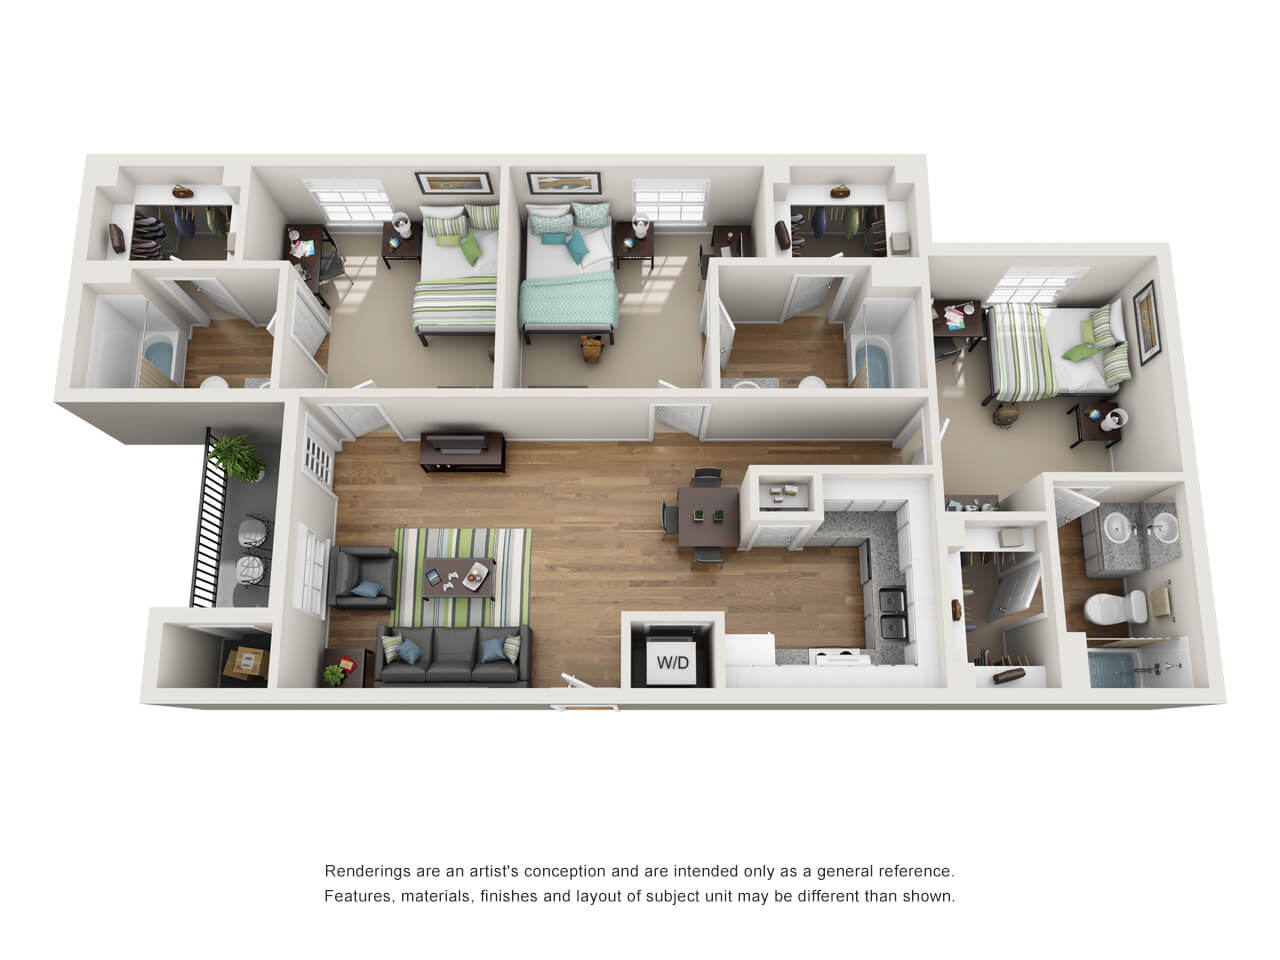 Floor plan of a three-bedroom student apartment